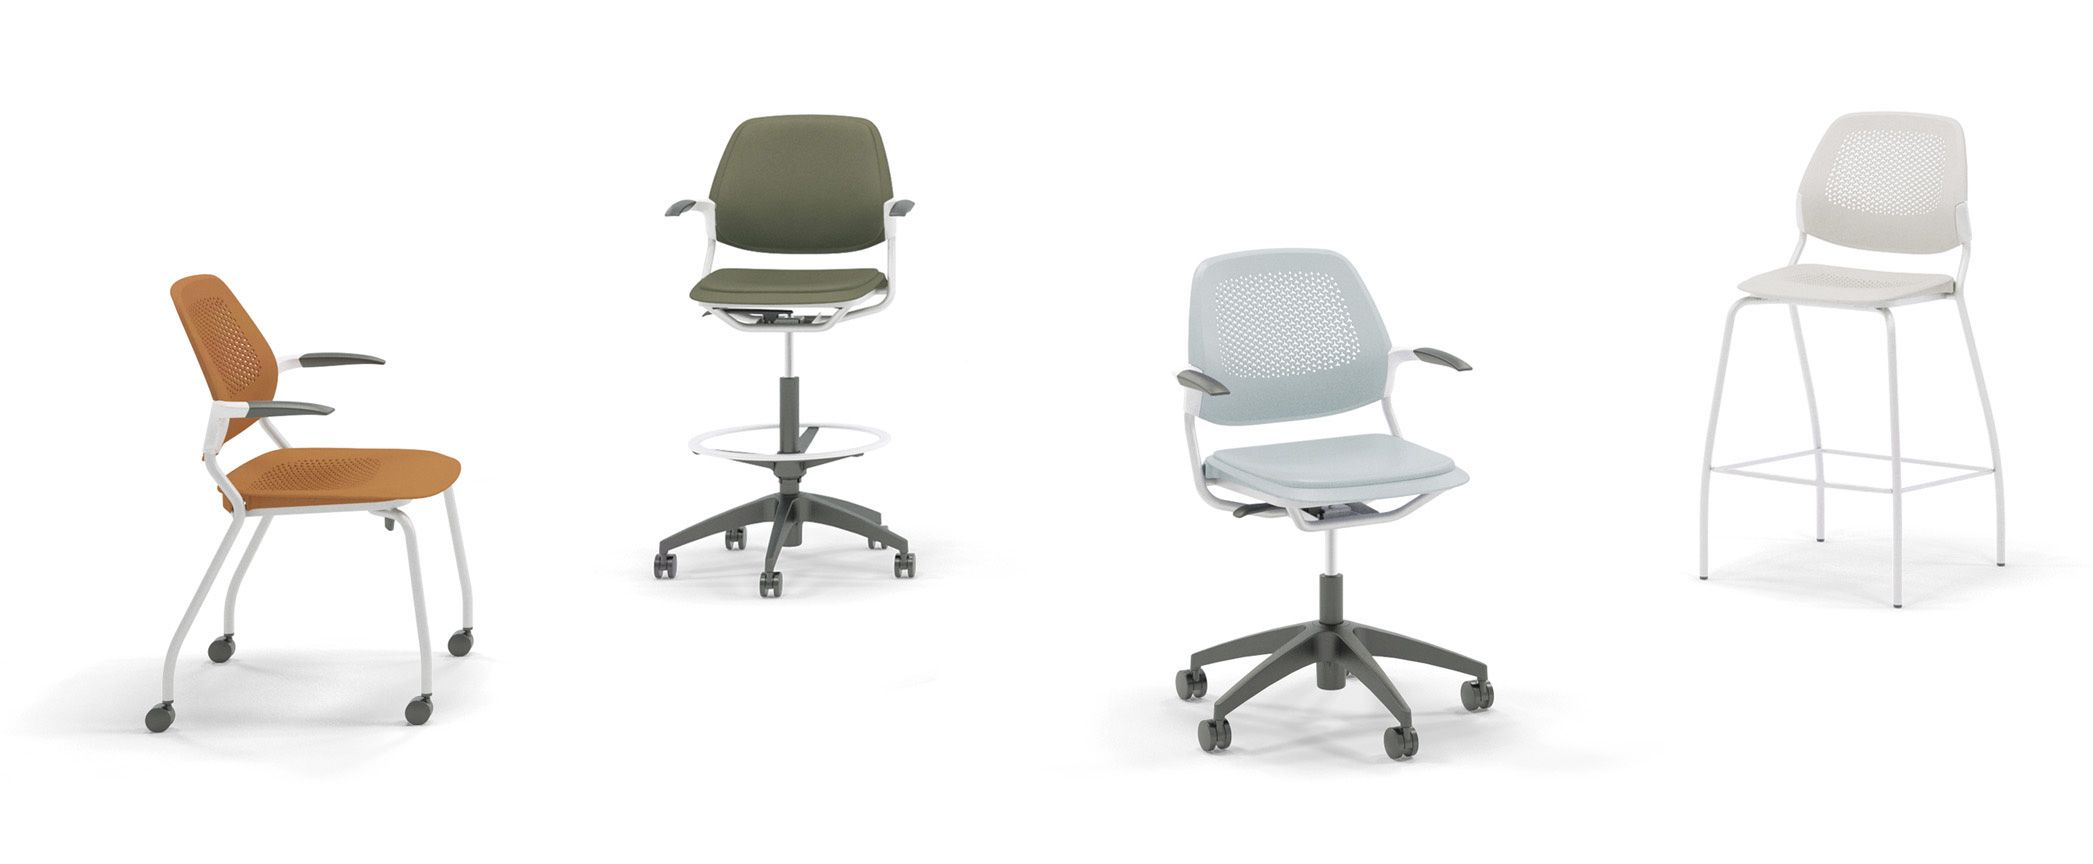 Allsteel Scout 28 Images Desk Office Chairs Seagate